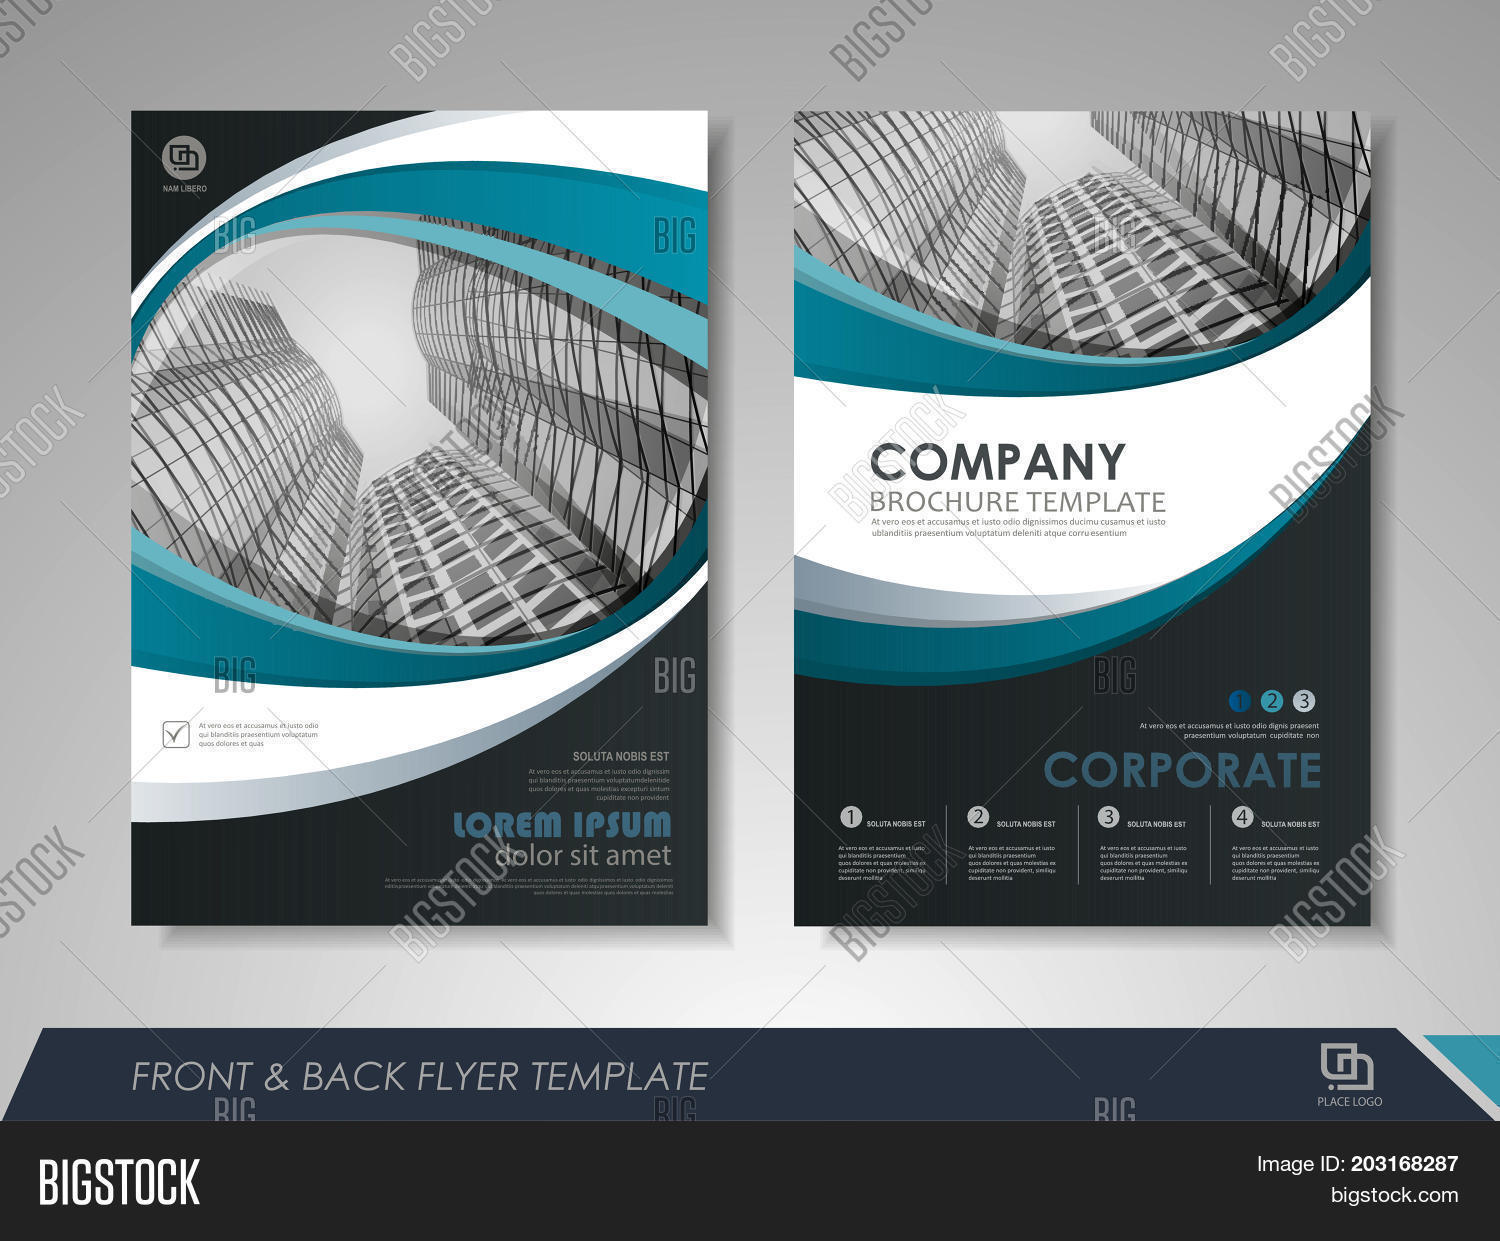 graphic design brochure templates - modern blue brochure vector photo free trial bigstock